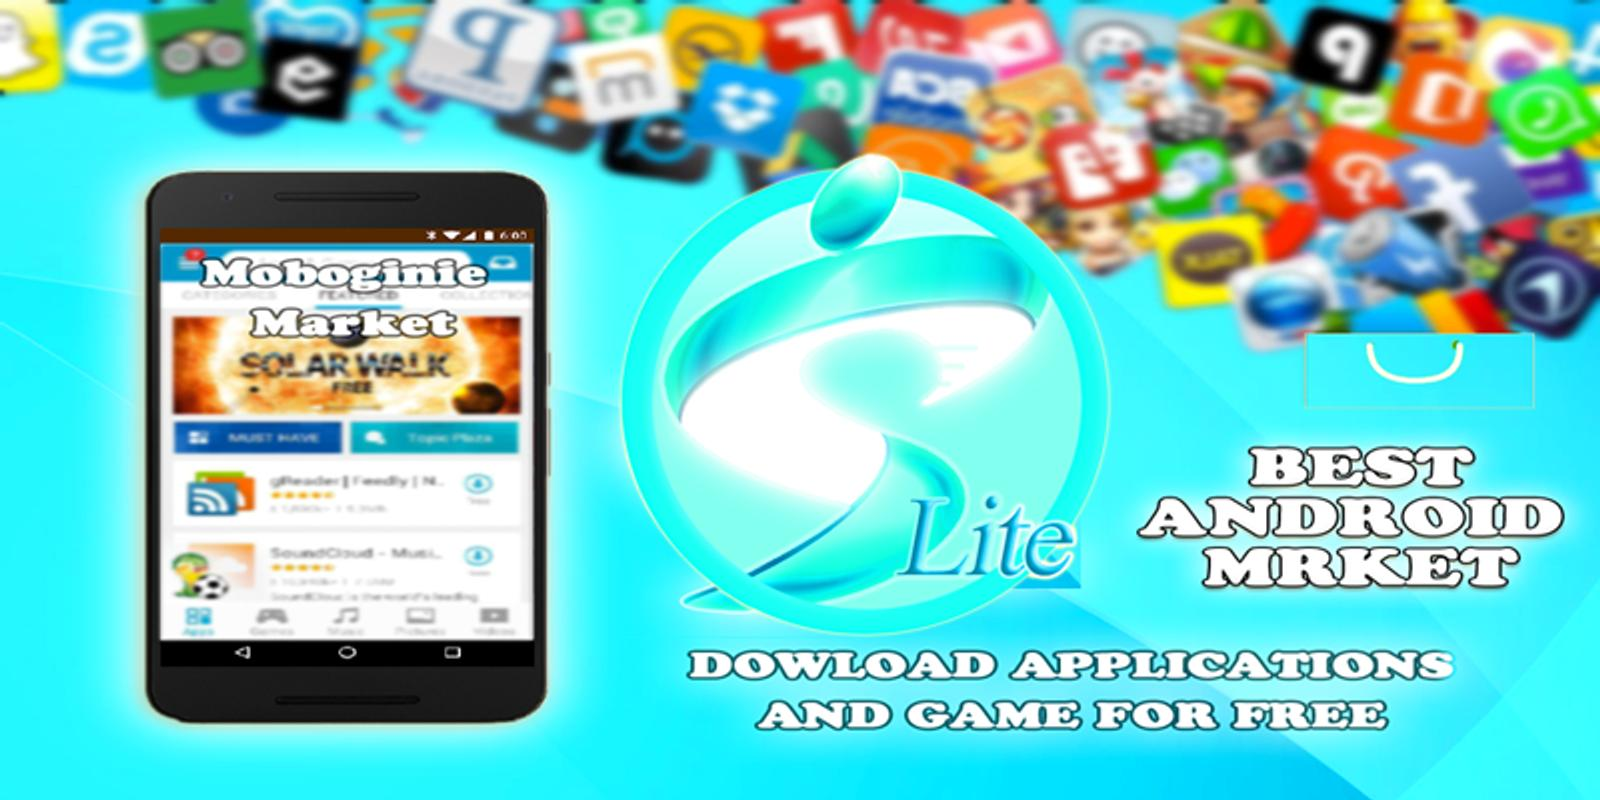 mobogenie apk for android 5.0